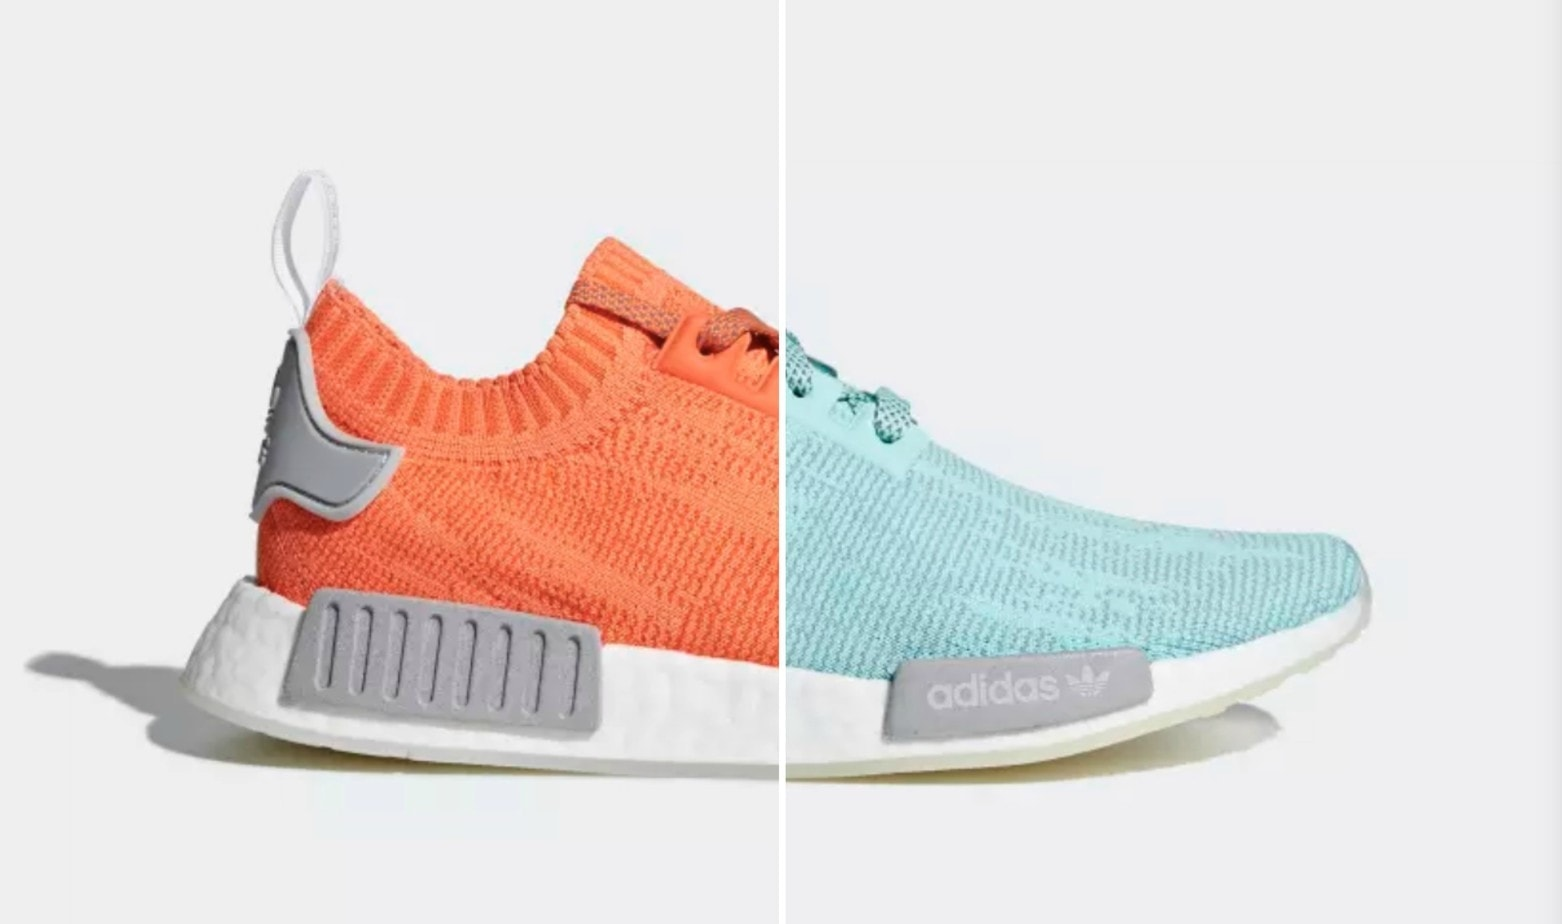 364ac0a389b18 The adidas NMD line is the new standard for lifestyle sneakers. The sleek  styling and incredible comfort have made them a perfect everyday shoe.